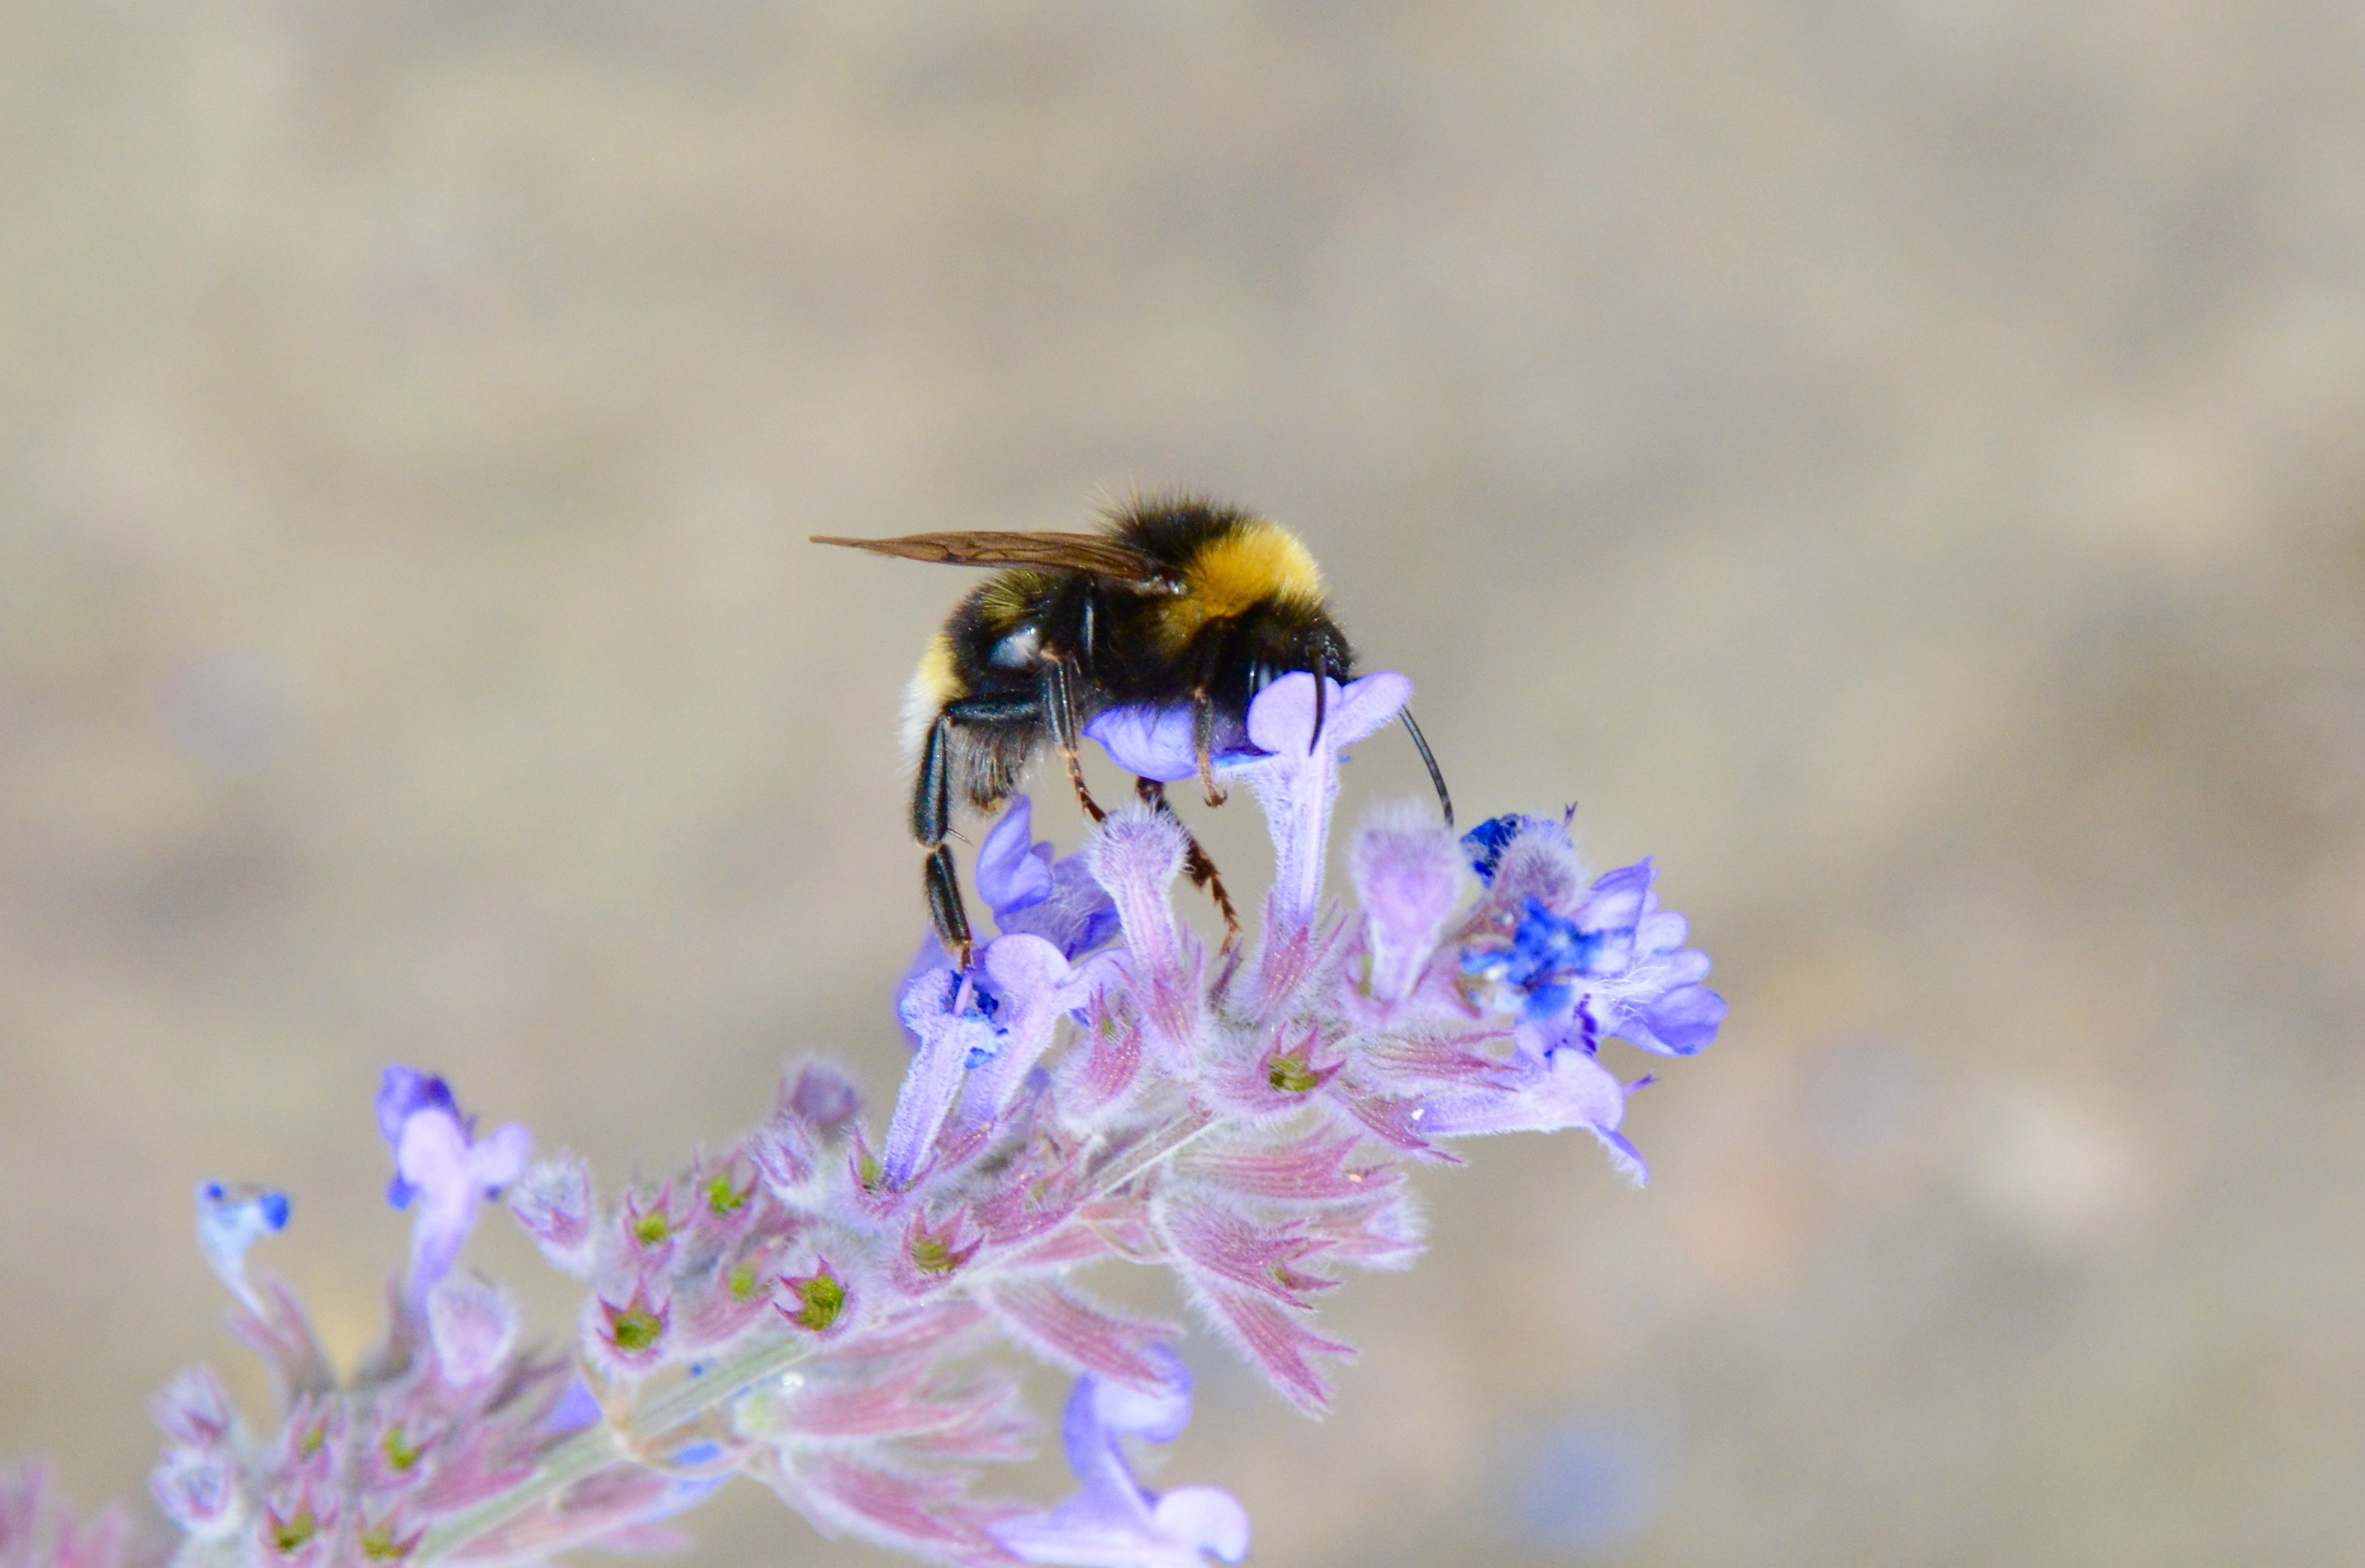 The Bombus terrestris, or buff-tailed bumblebee.